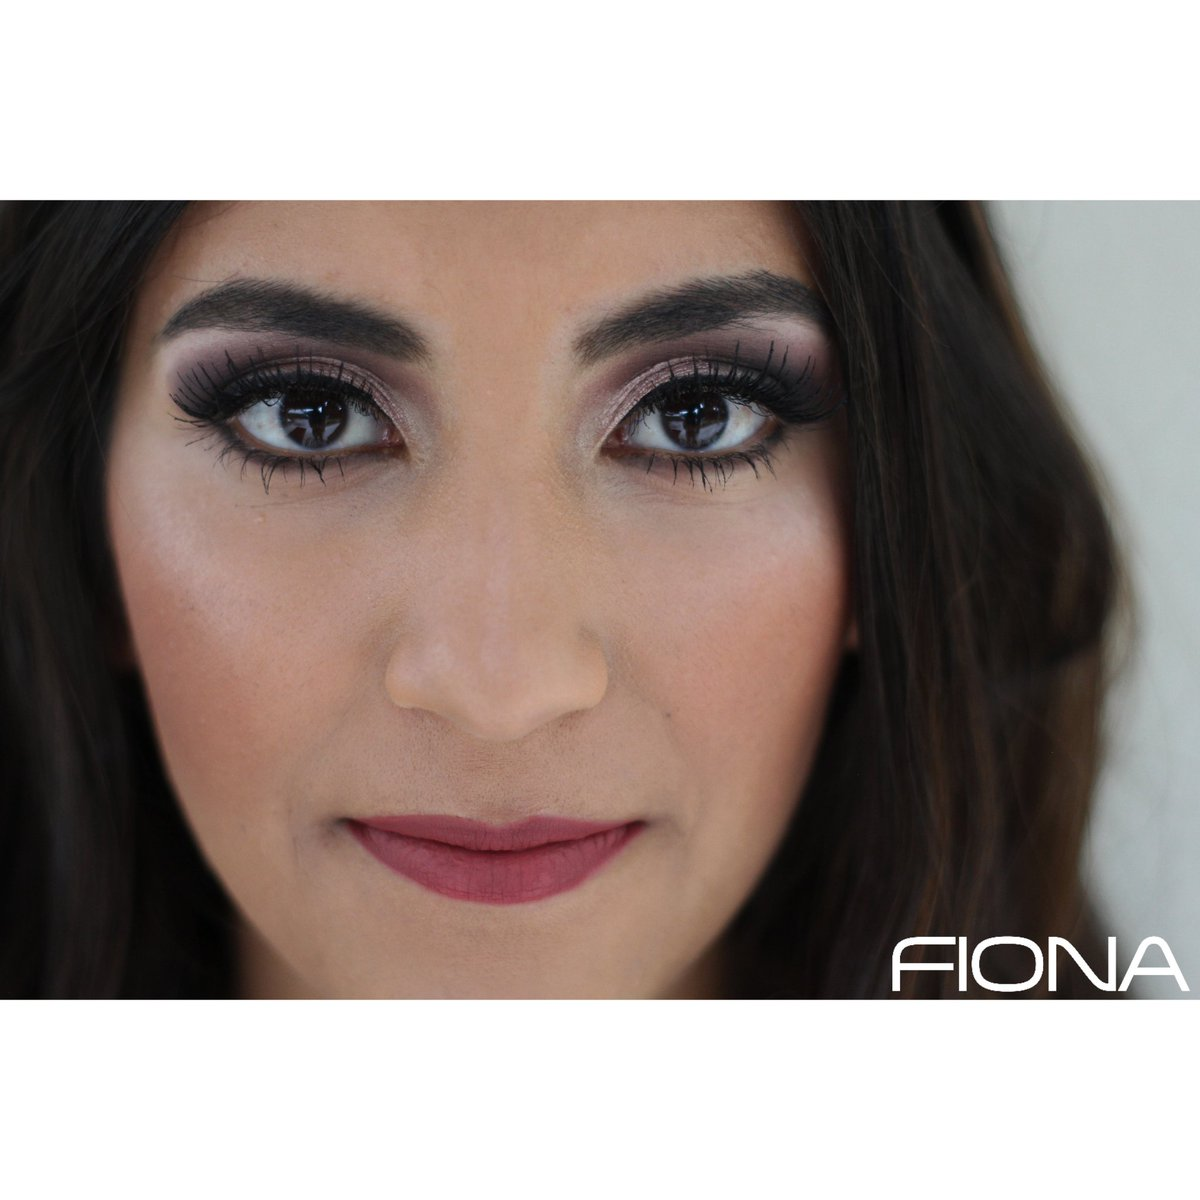 Looking forward to the moment when we can be together and give you and Amazing Make-up.   Make-up by: @isalarcon3  - - - #concanasperoencasa #salonfiona #salondebelleza #makeup #makeupartist #skincare #beauty #60años #aniversario #maquillista #maquillaje #smokeyeyes #cutcreasepic.twitter.com/L7dU3X2ses